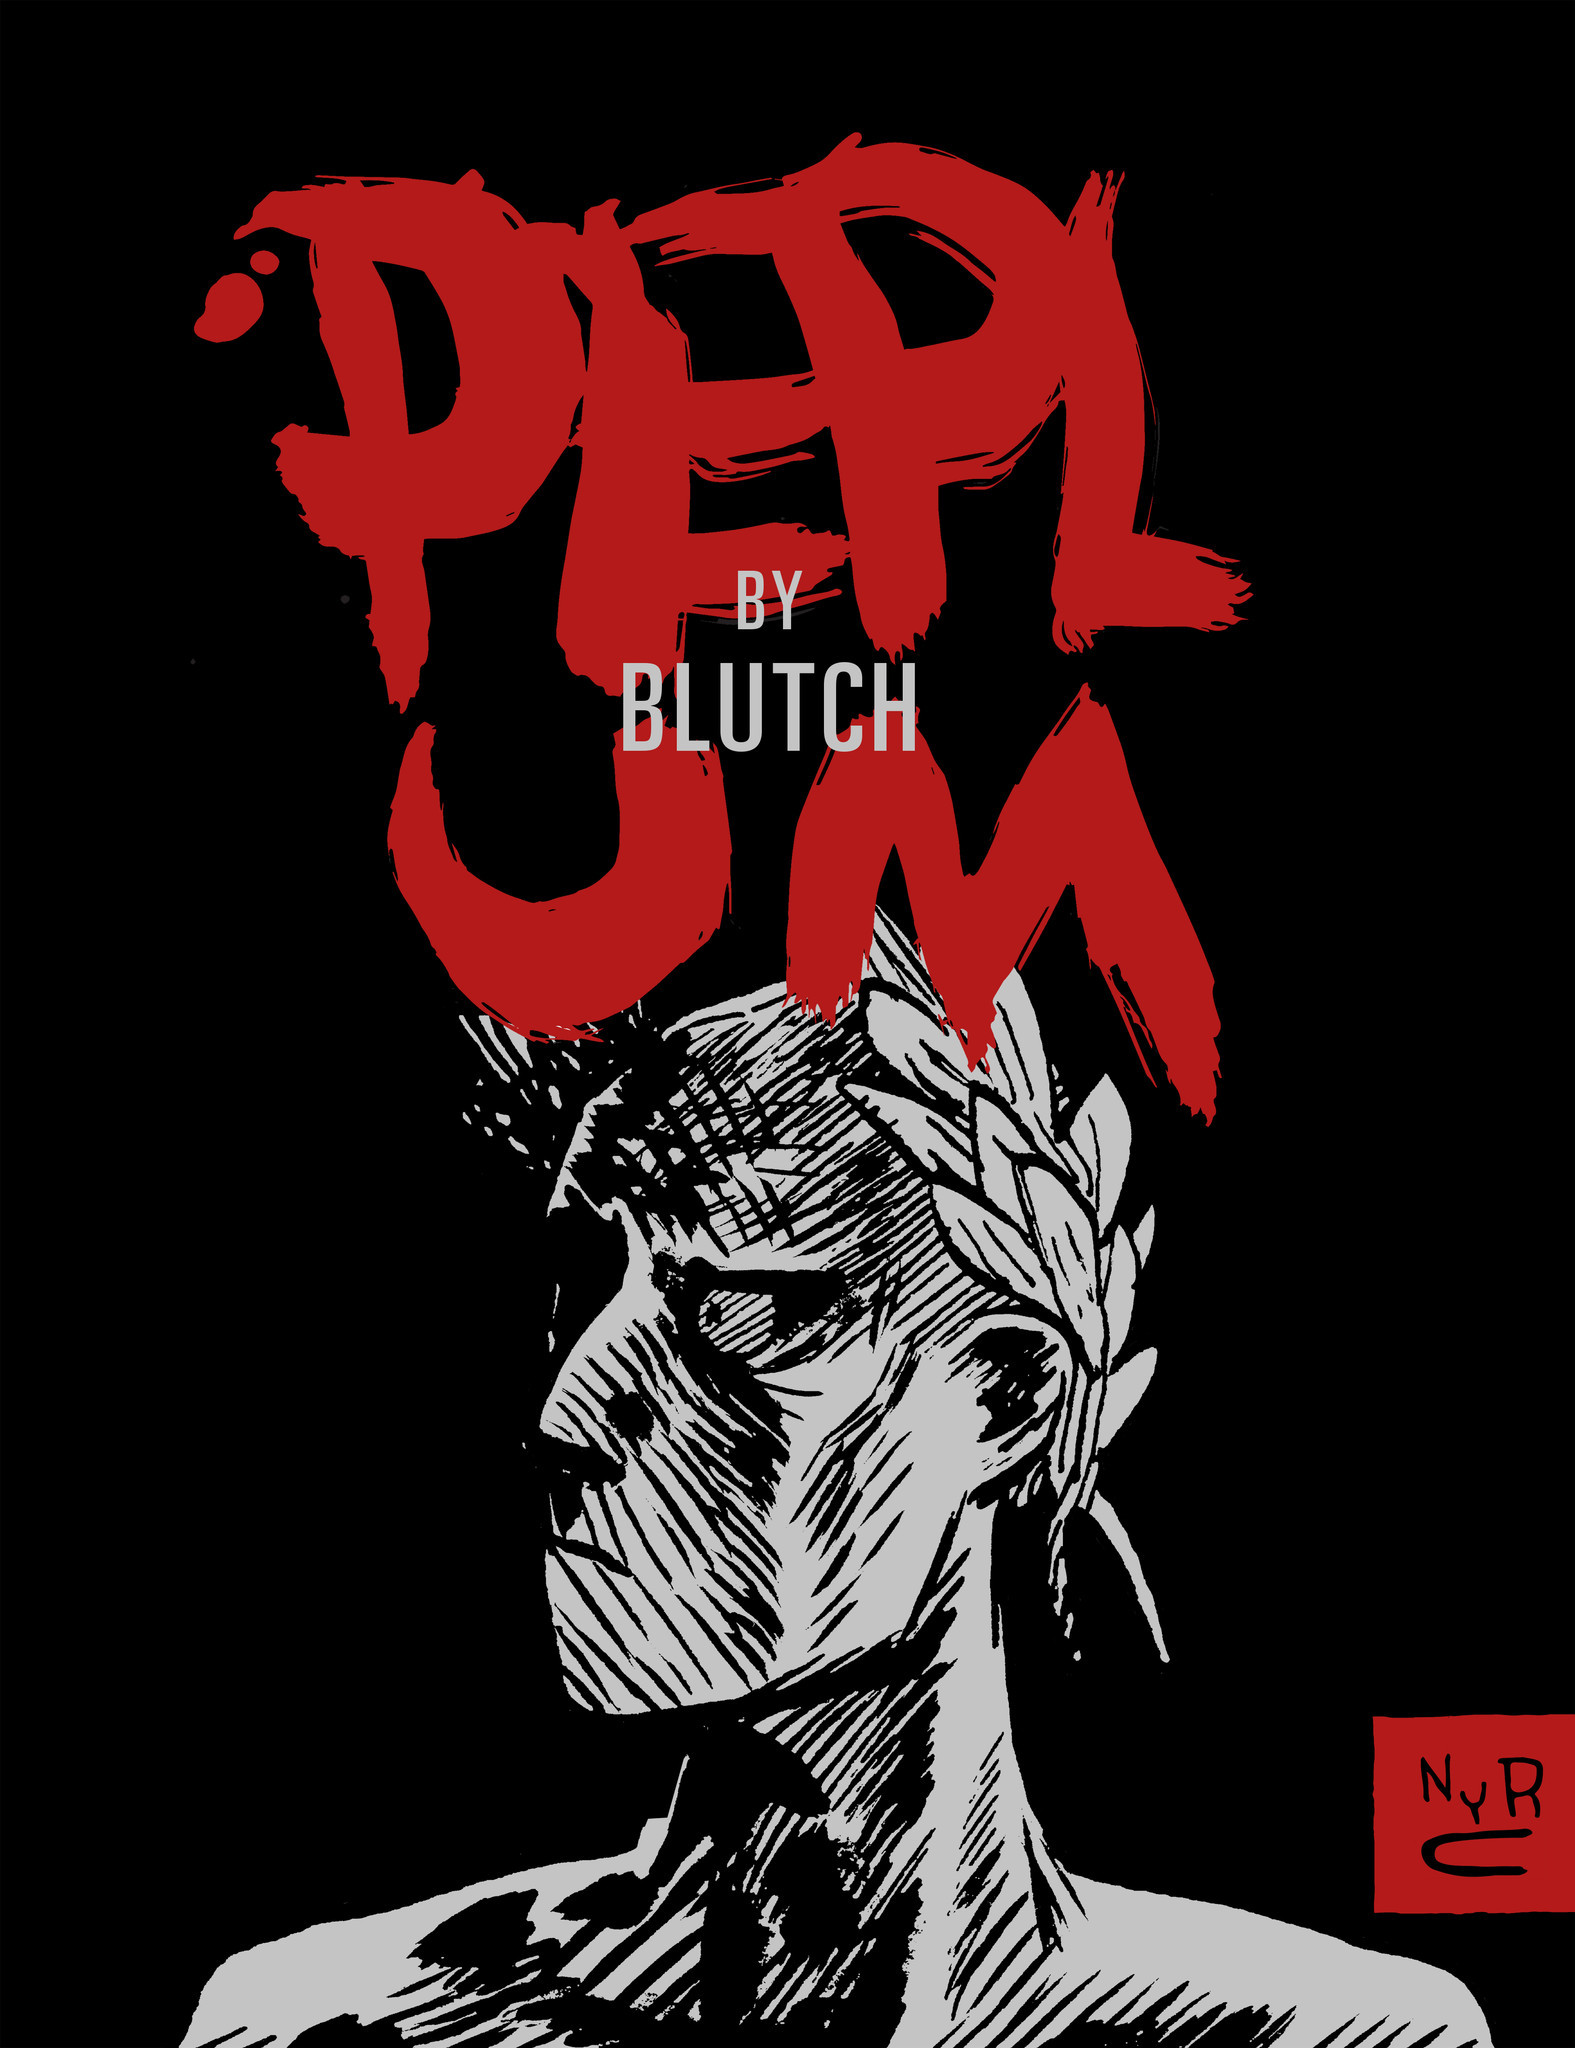 Blutch's landmark graphic novel Peplum, published in English by New York Review Comics, 2016 (original French edition by Cornélius, 1997).